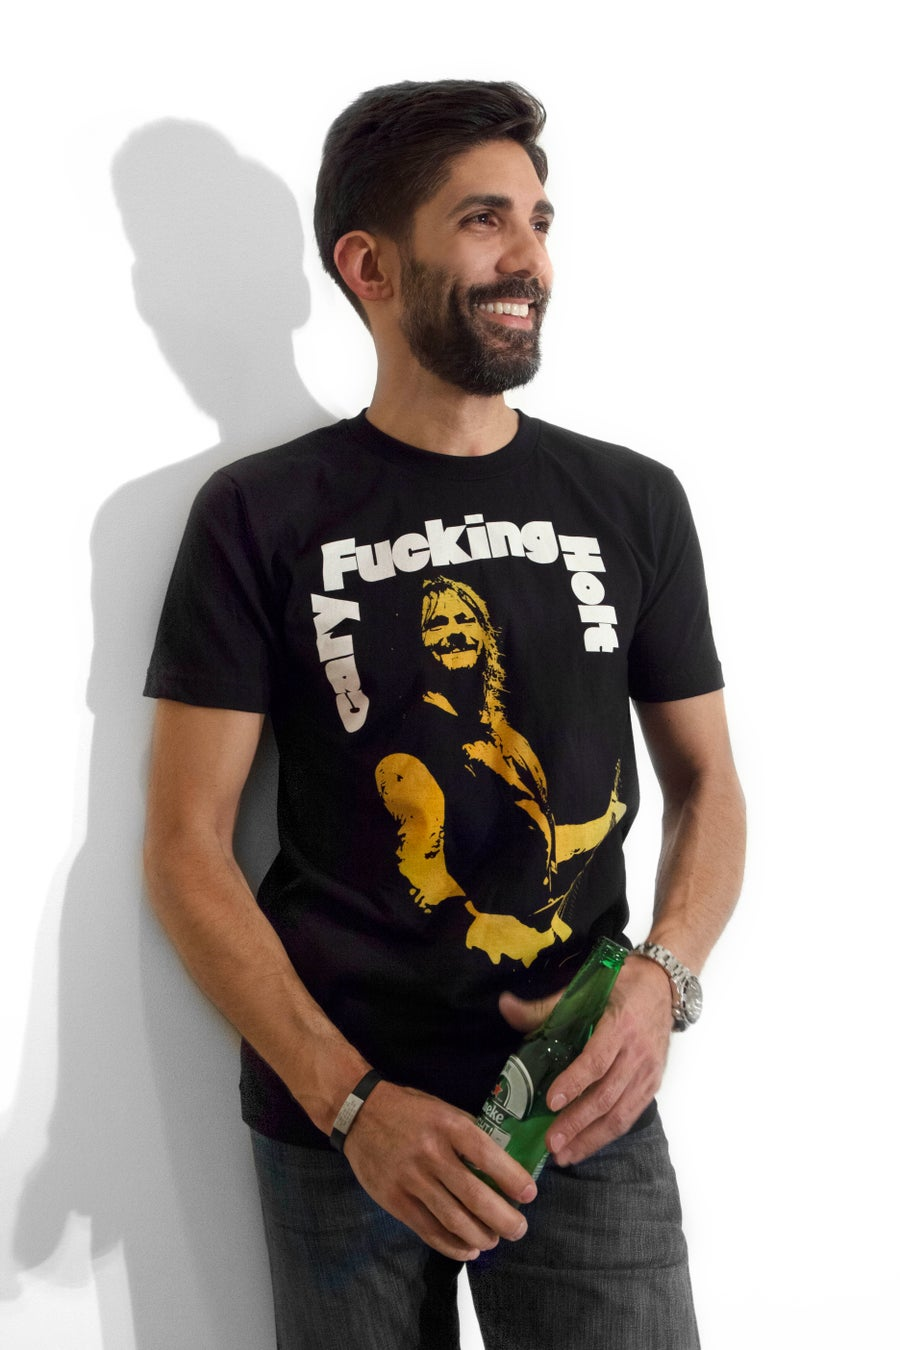 Image of Gary Fucking Holt Tshirt (Large only)